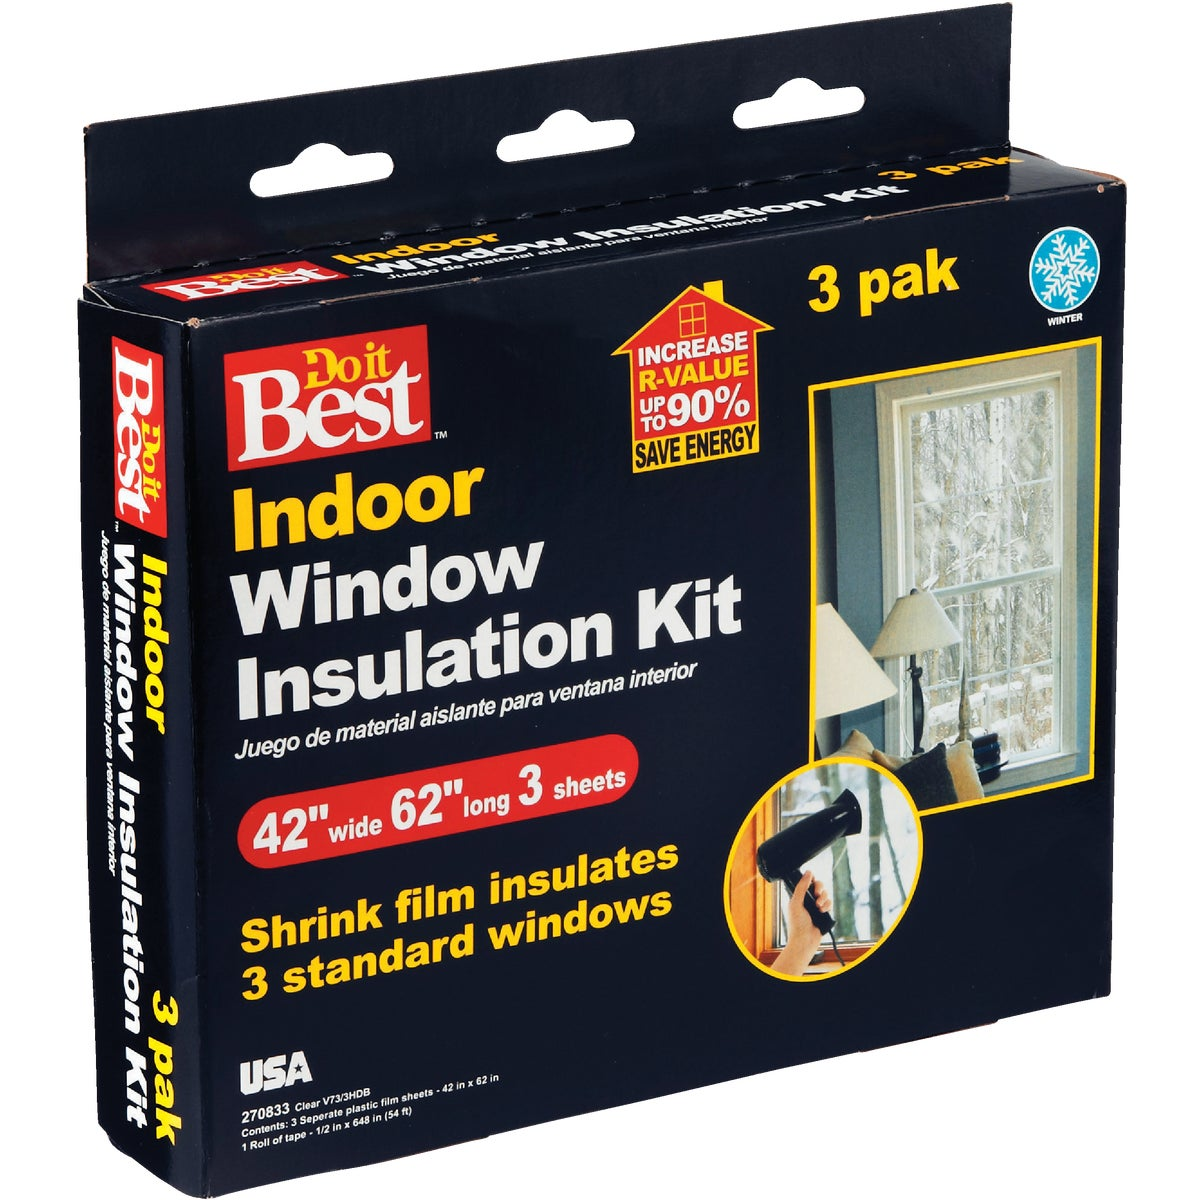 Thermwell Prods. Co. 3PK SHRINK WINDOW KIT V73/3HDB